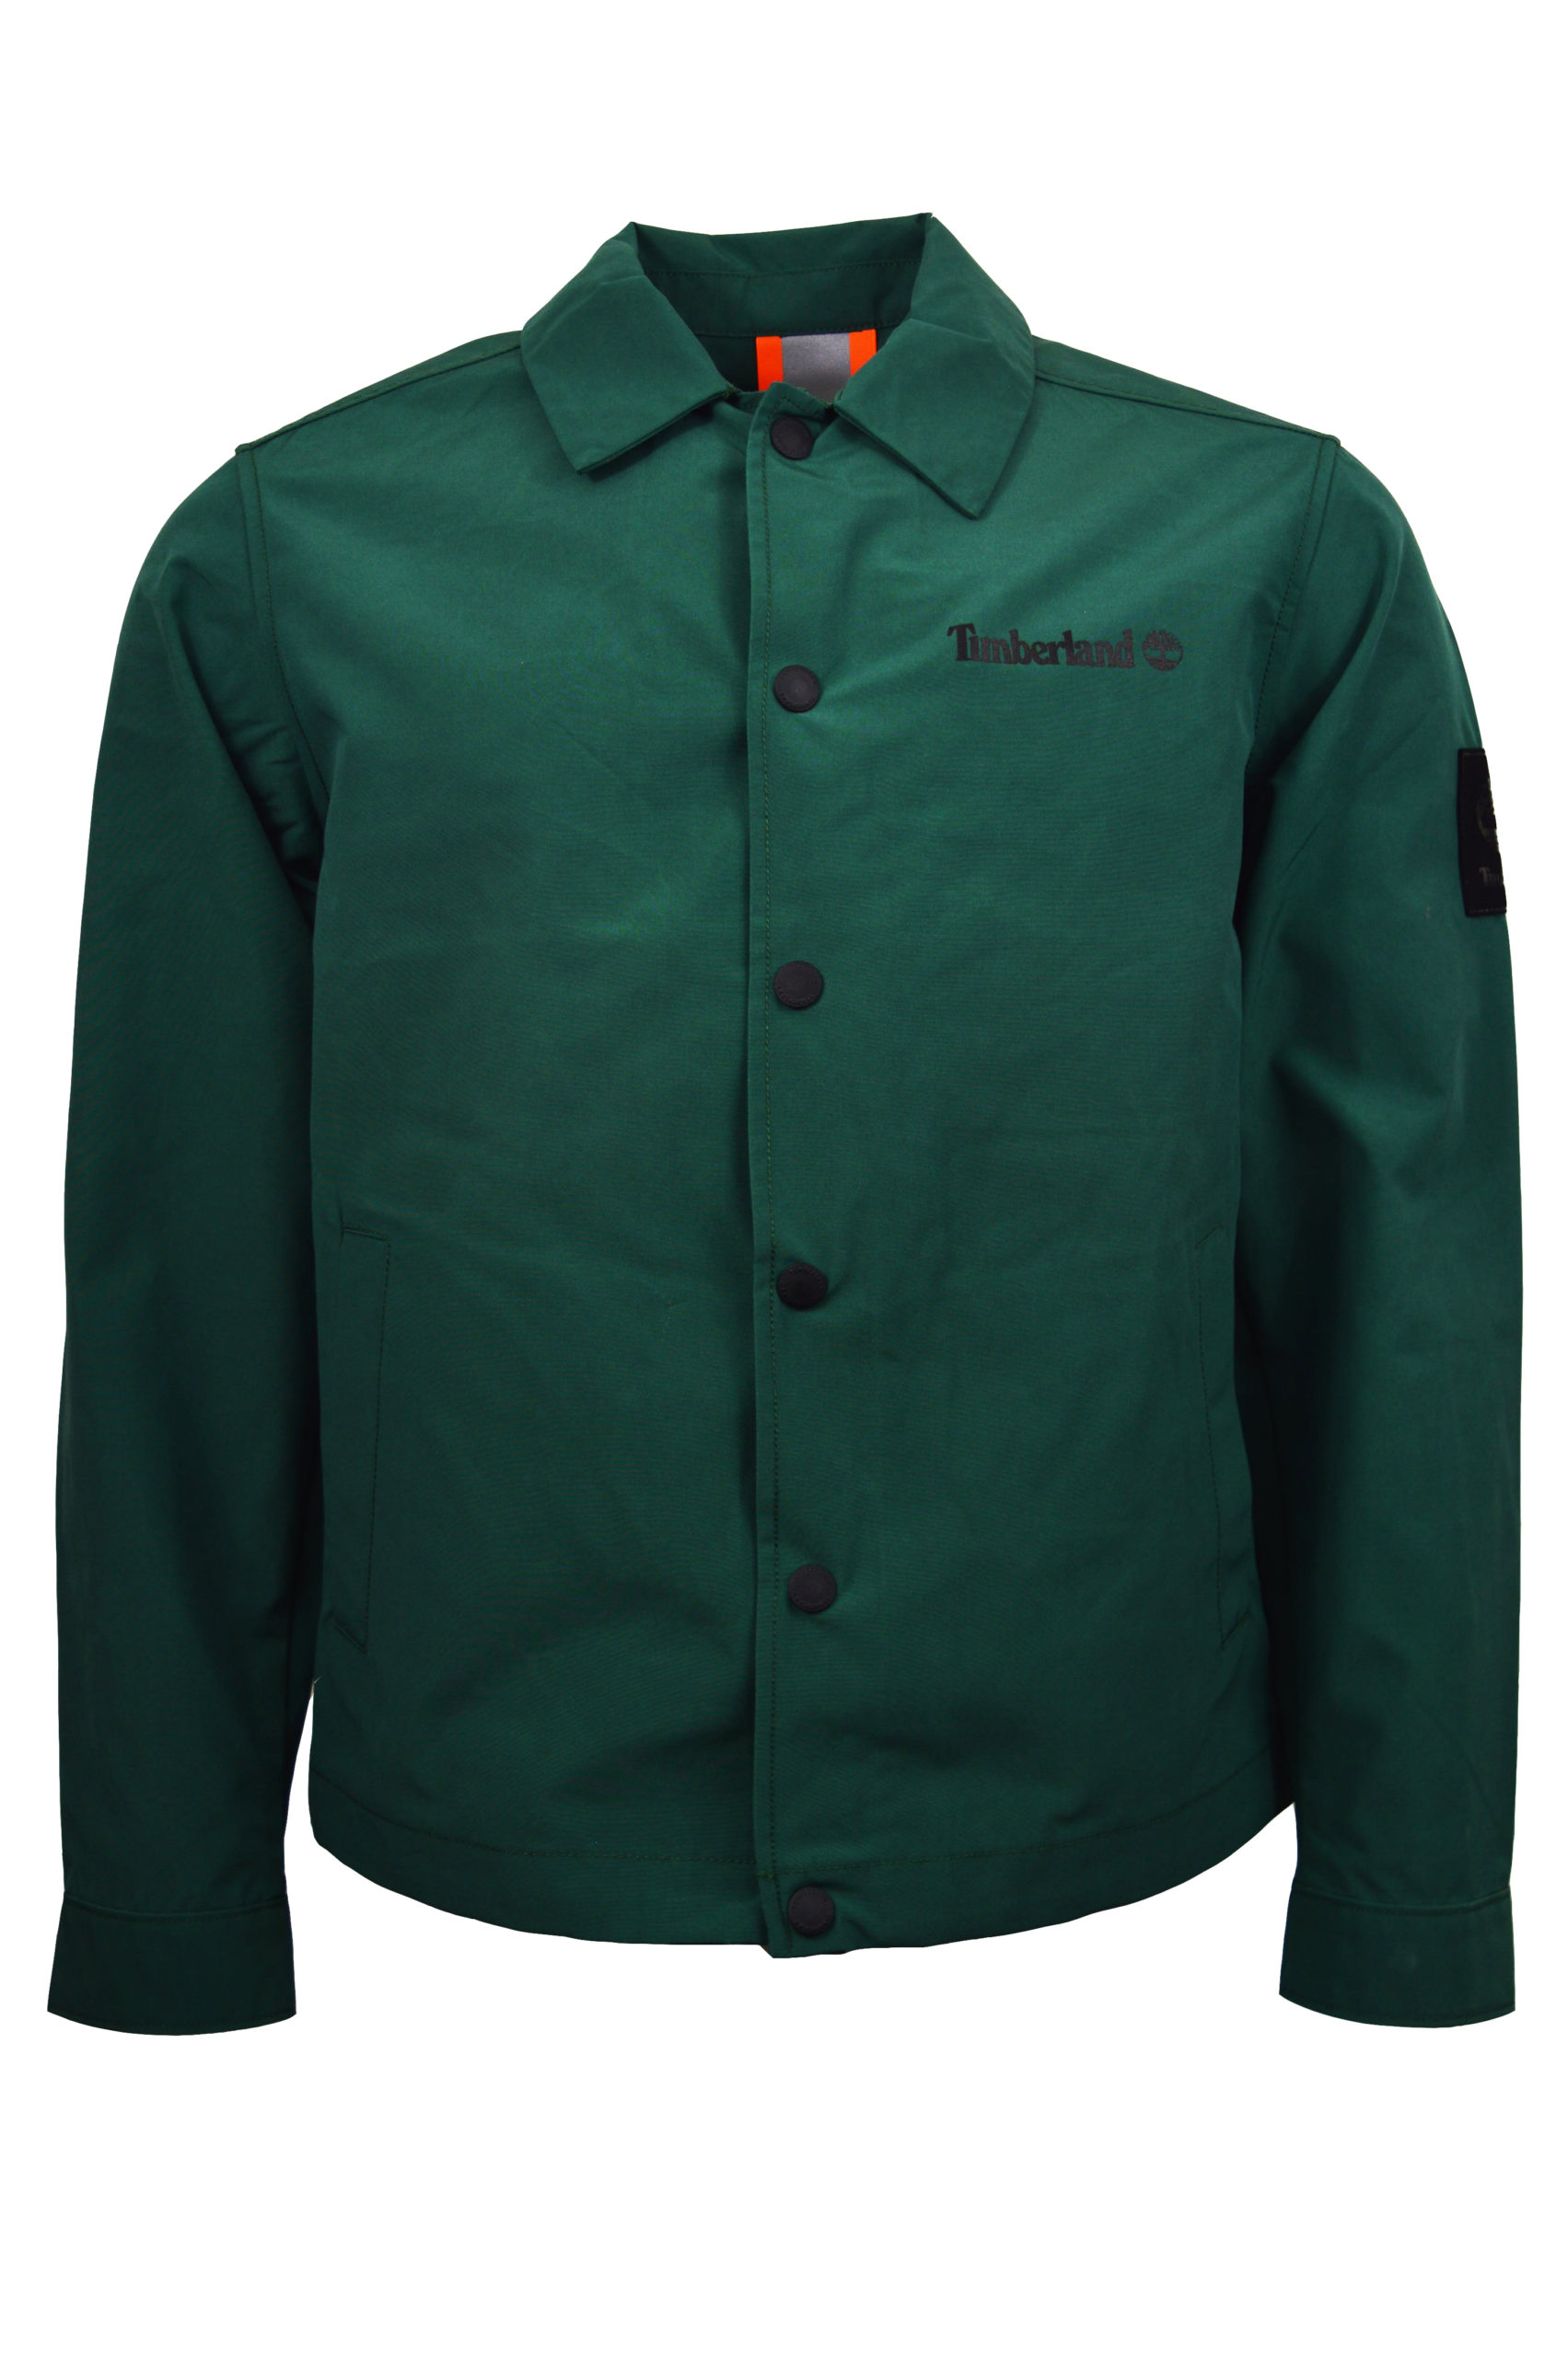 Timberland - Coach Jacket 21E9 - Green